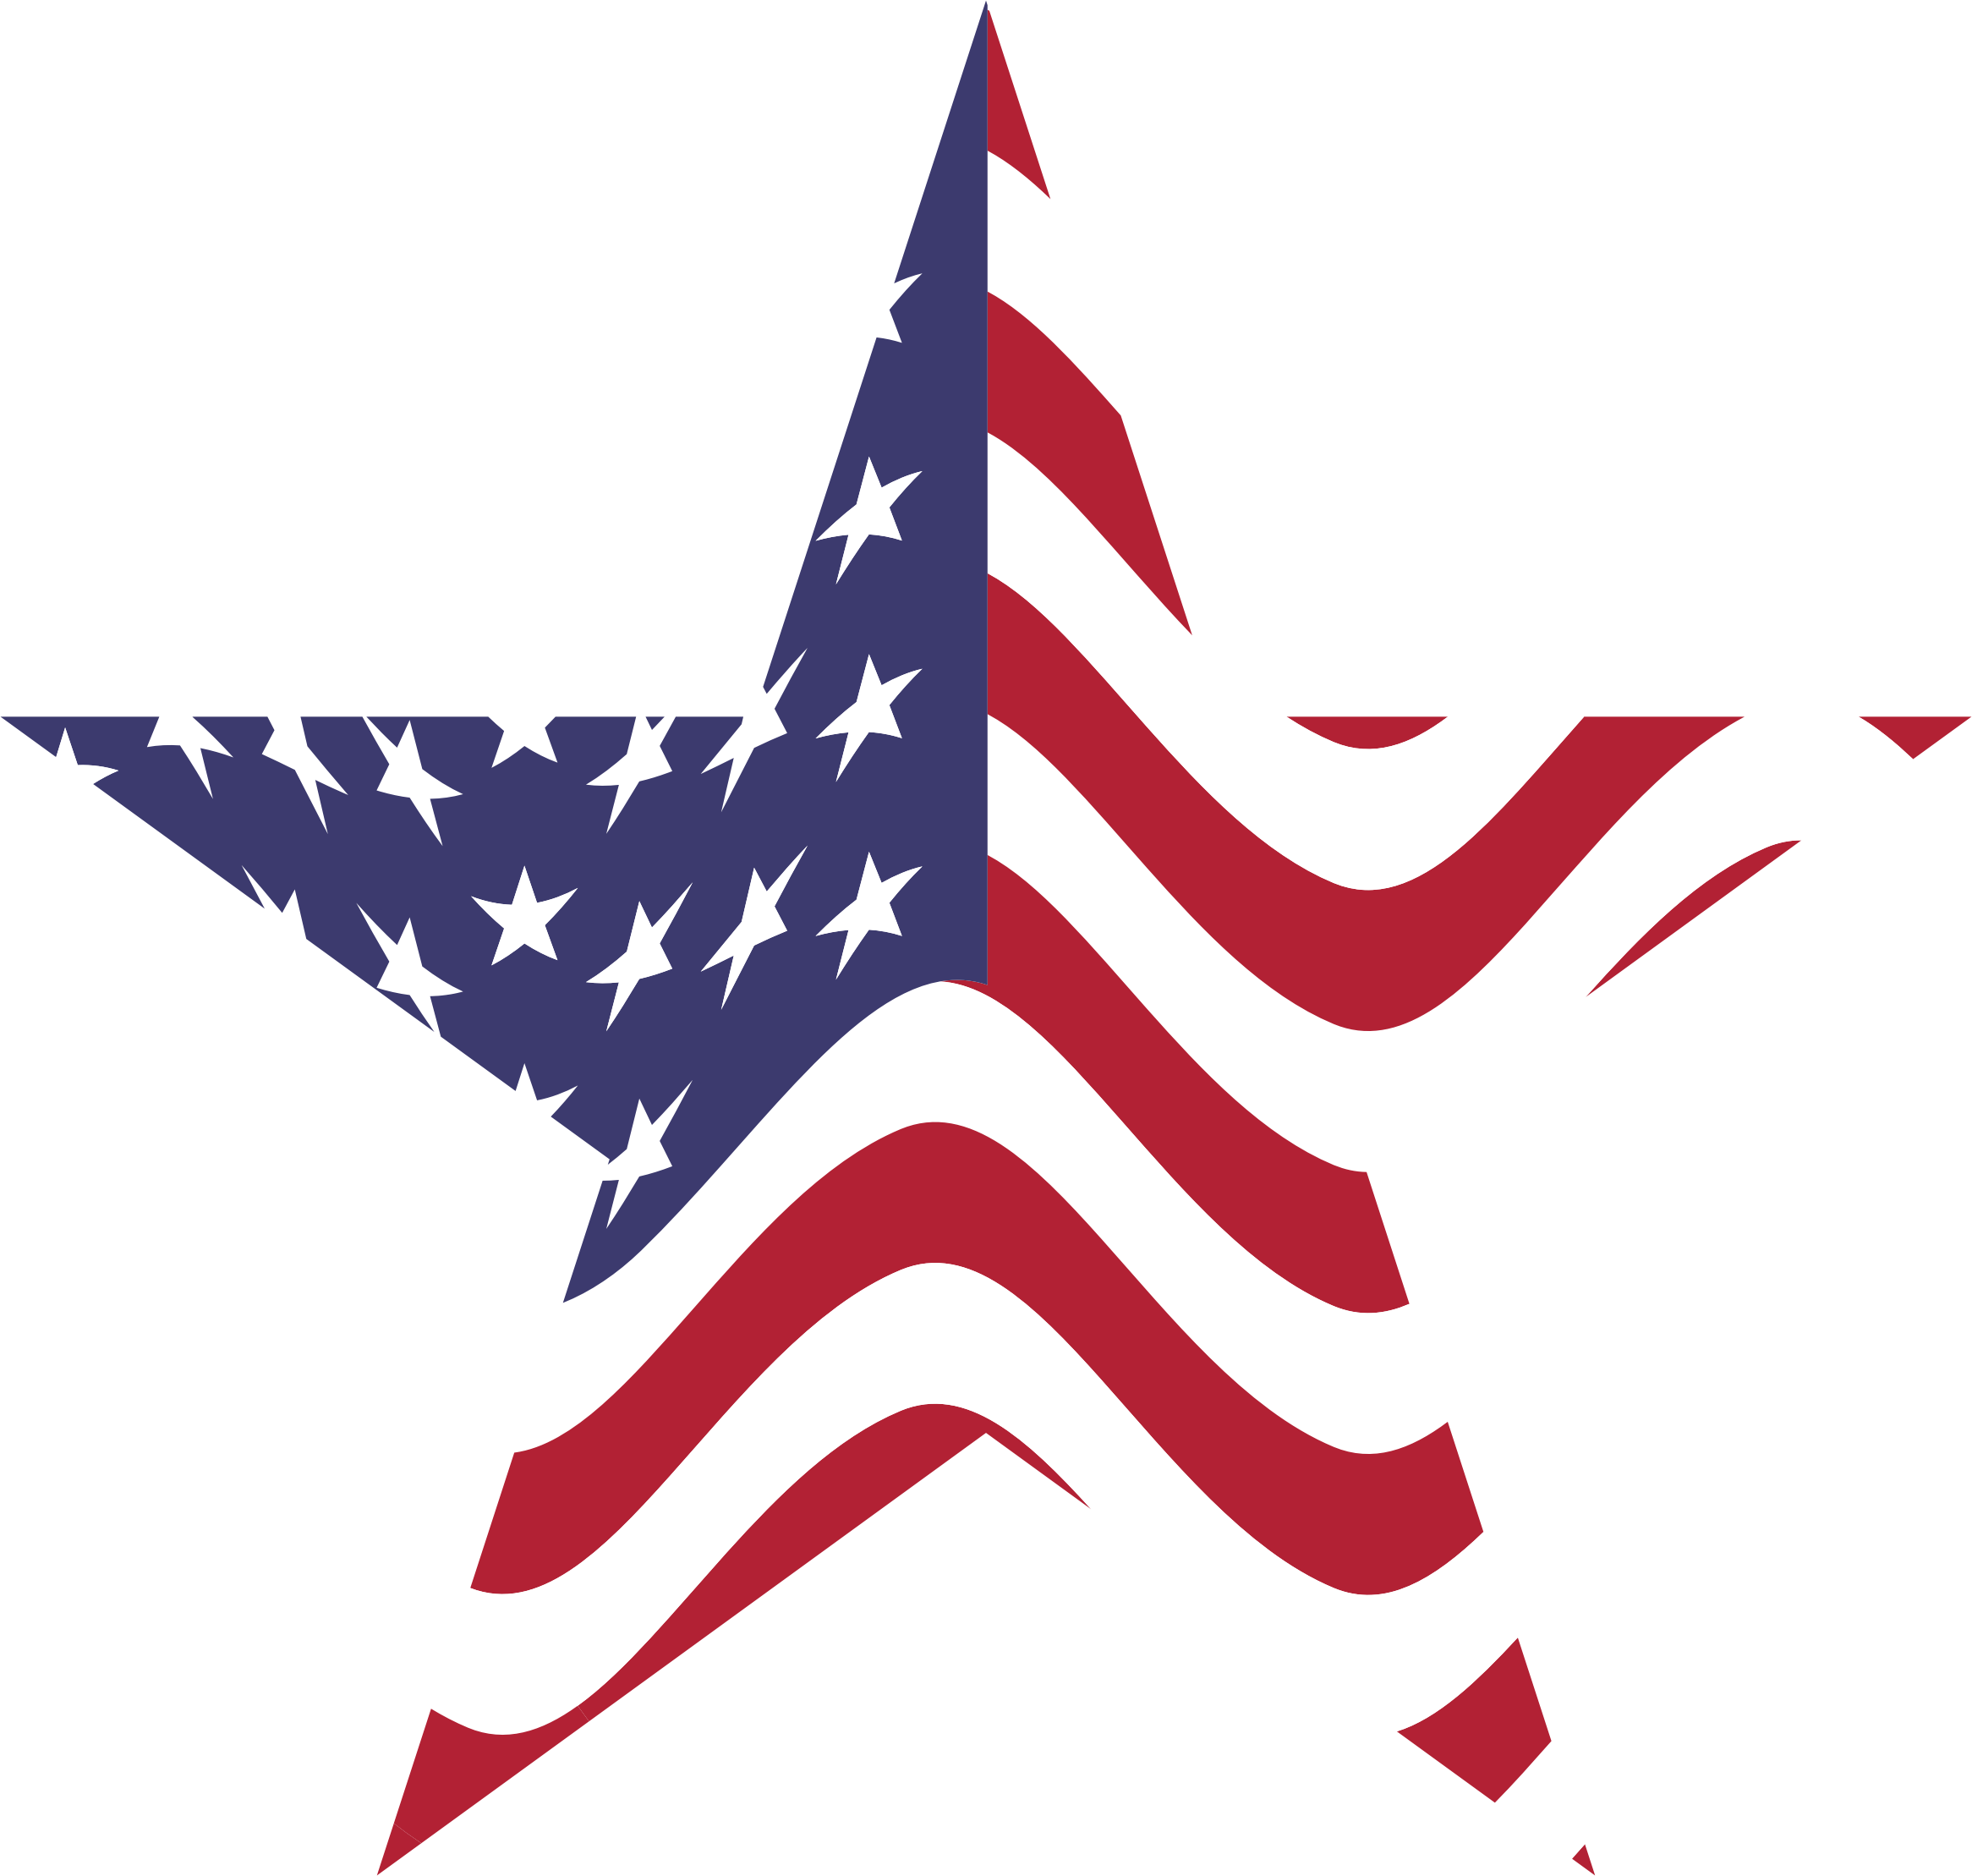 vector free download Usa drawing patriotic. American flag star by